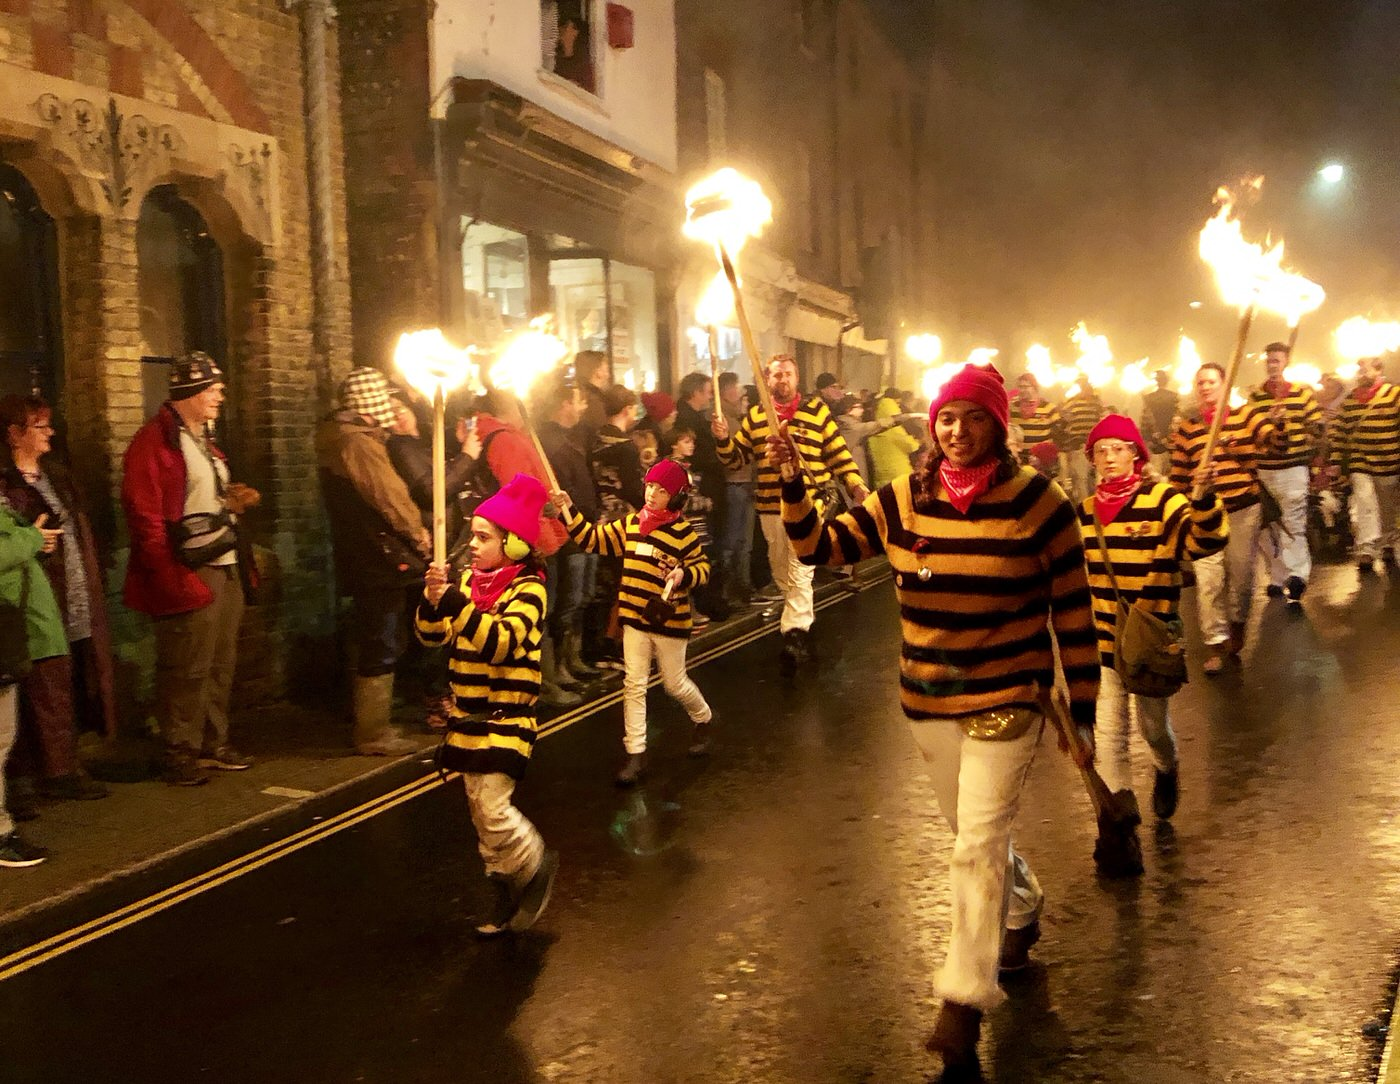 A first-timer's guide to Bonfire Night in Lewes, England